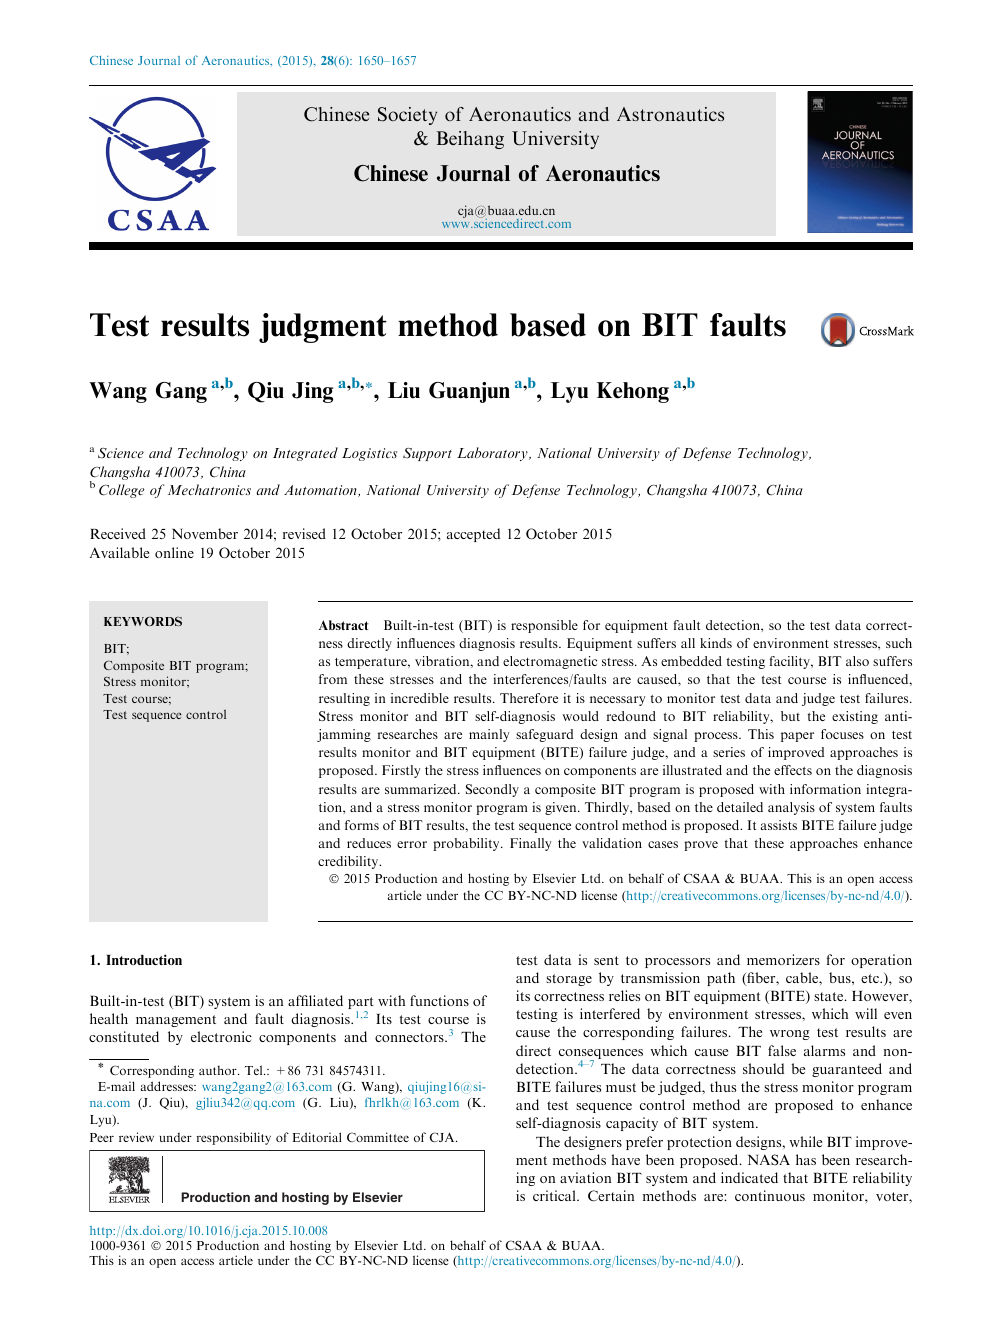 Test results judgment method based on BIT faults – topic of